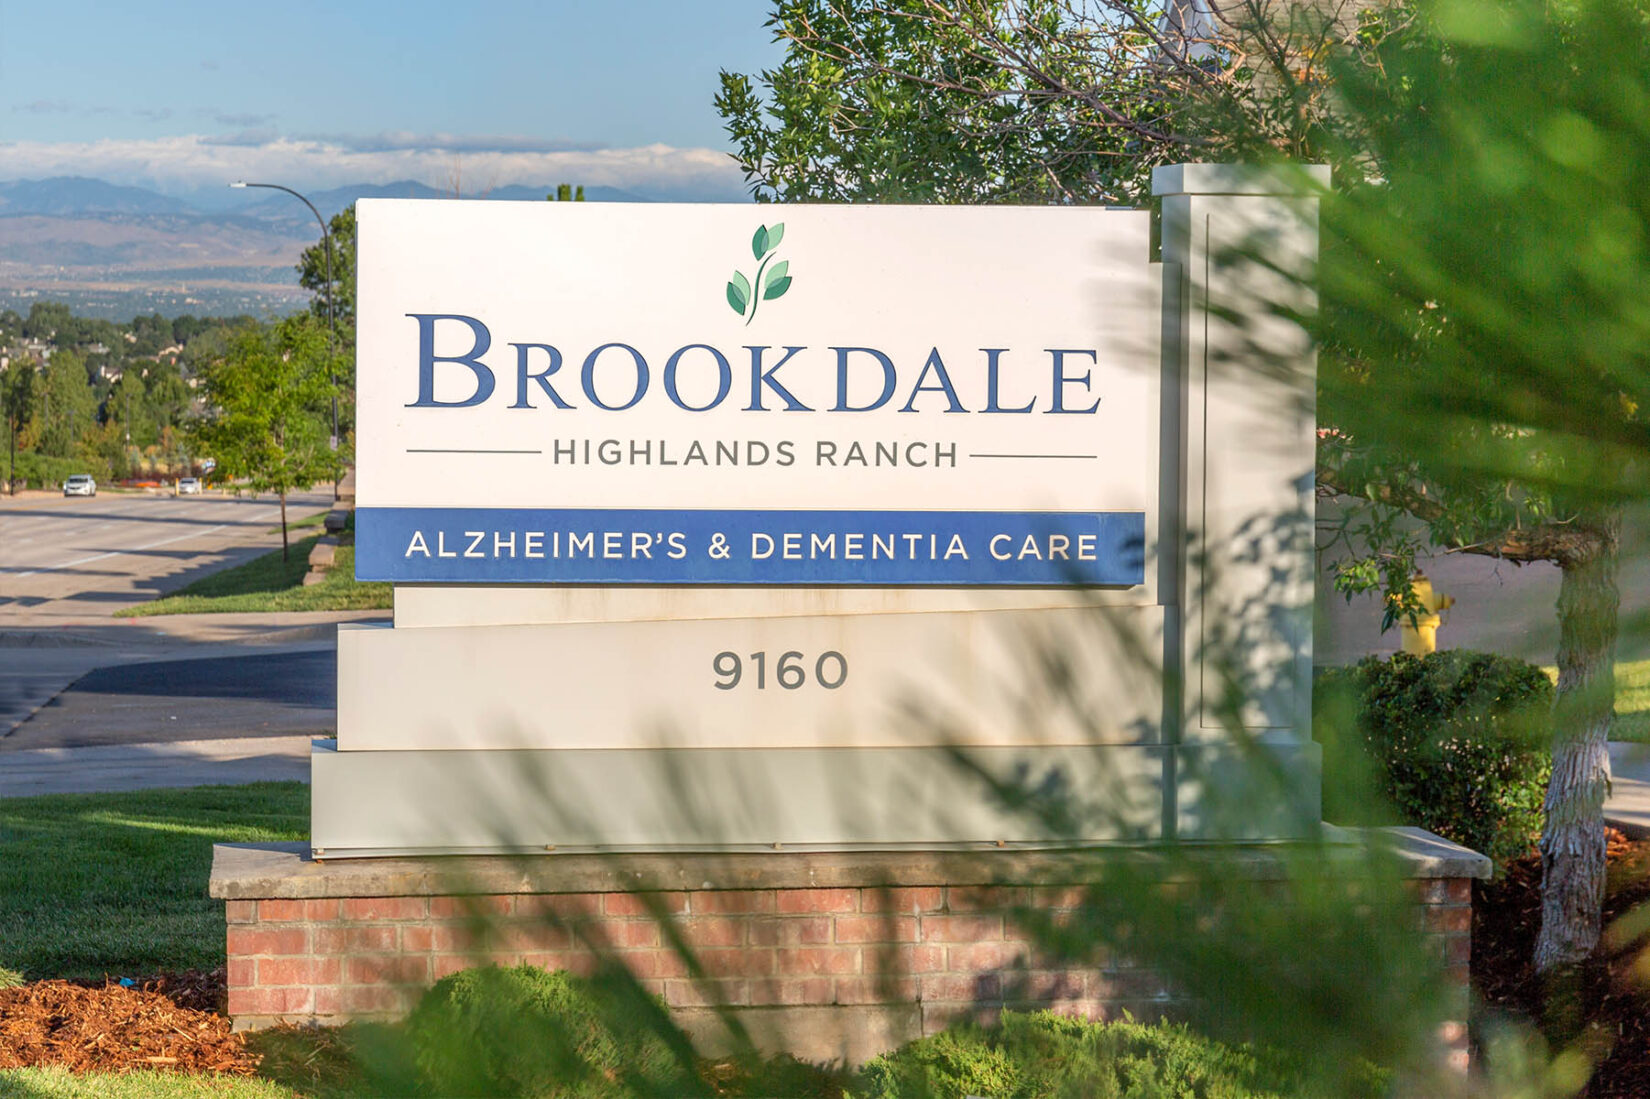 Brookdale Highlands Ranch - Alzheimer's and Dementia Care Sign